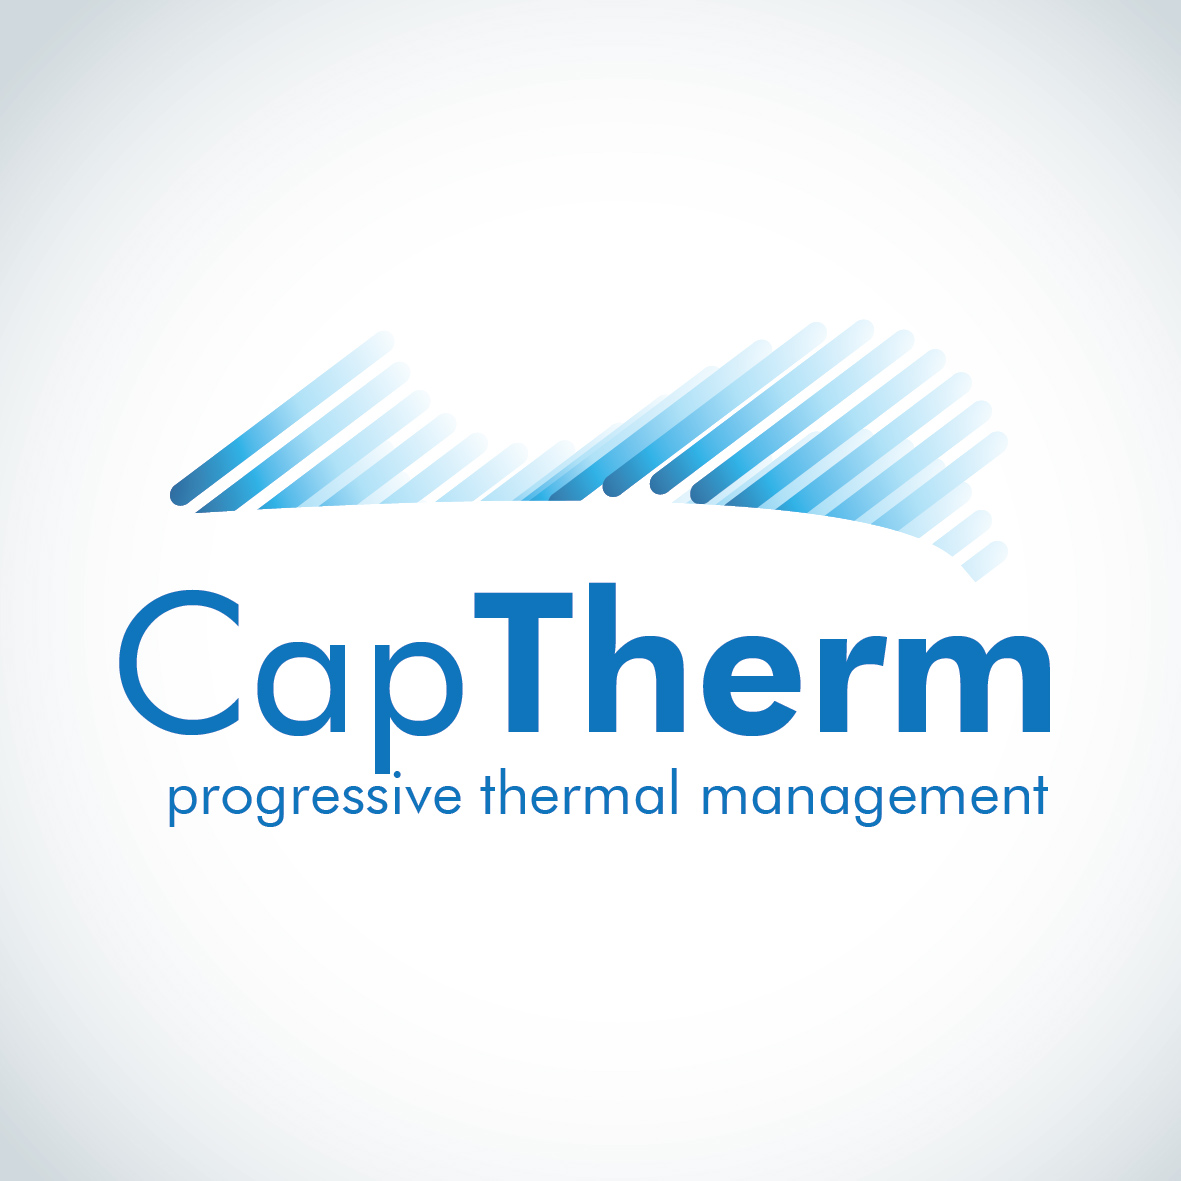 Logo Design by aesthetic-art - Entry No. 12 in the Logo Design Contest CapTherm Logo.